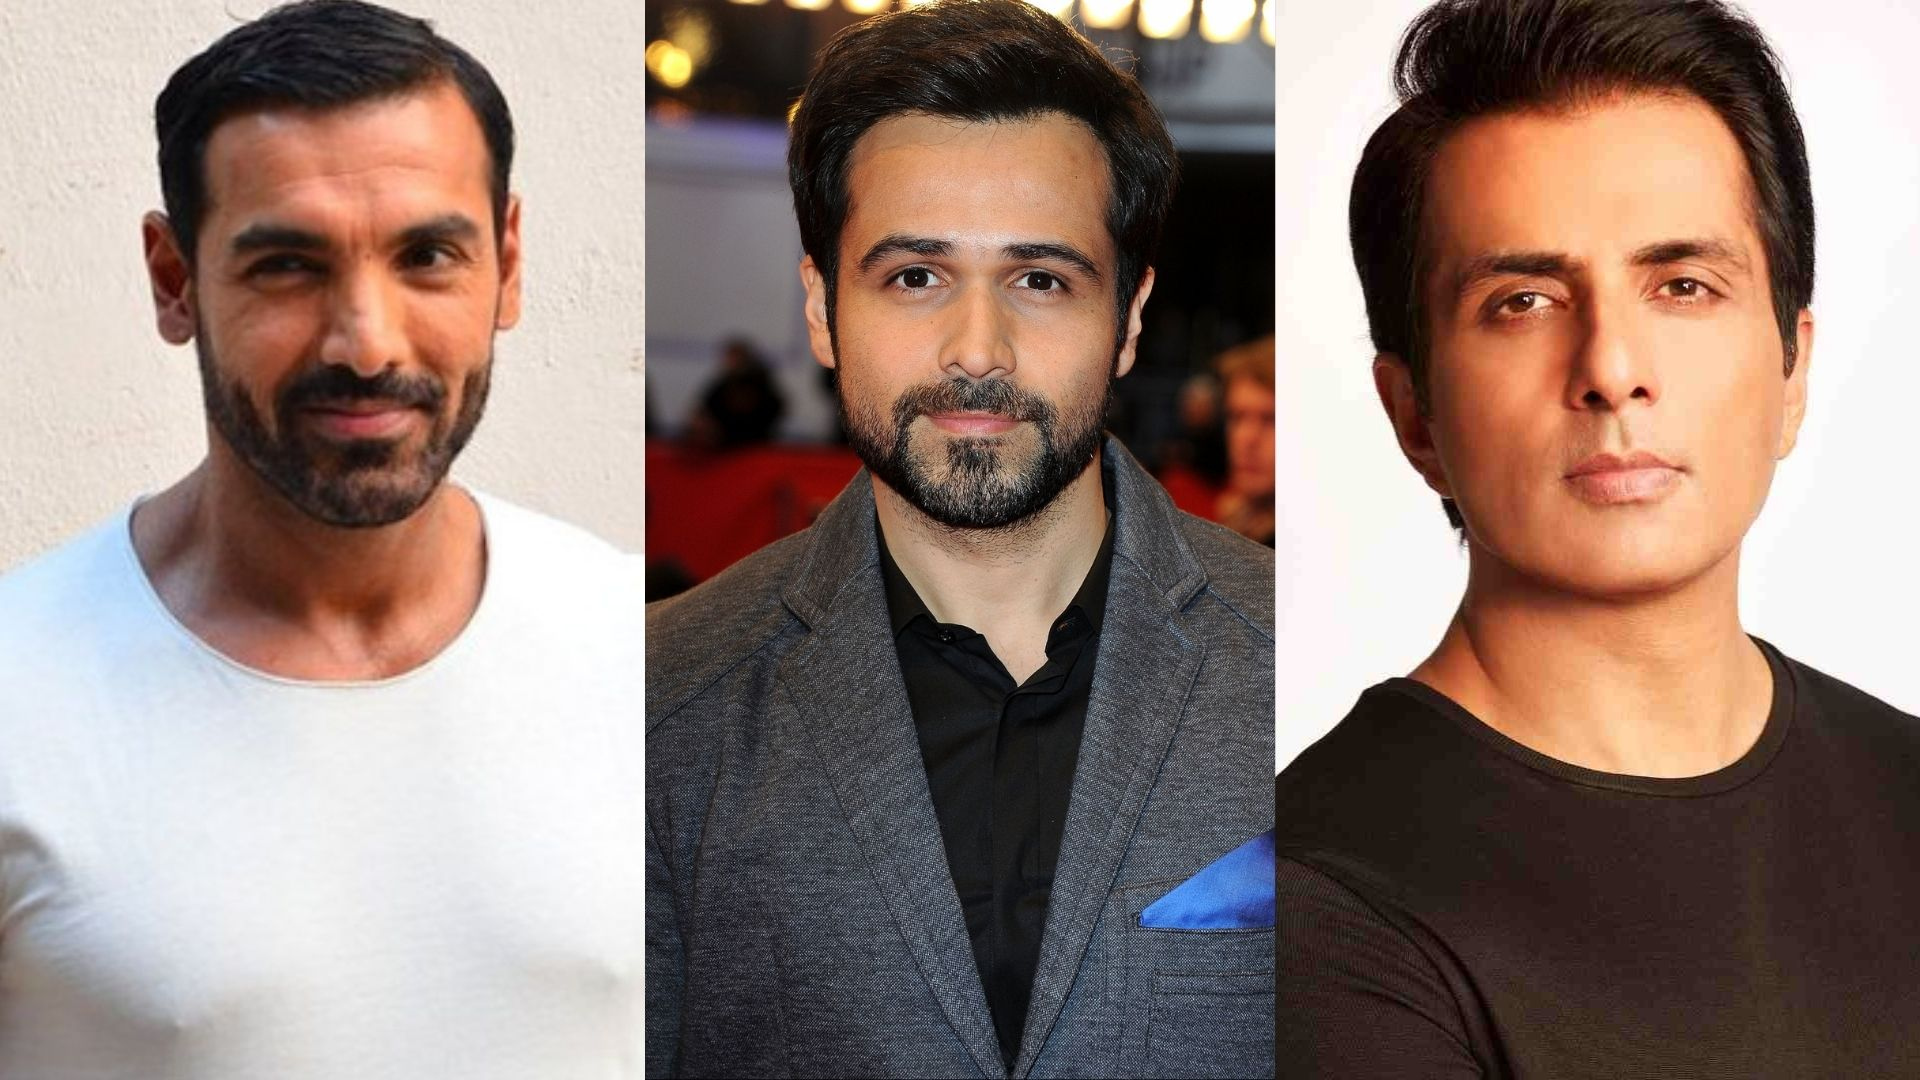 John Abraham, Emraan Hashmi And Sonu Sood Get Snapped As They Go Out And About In The City; Send Fans In A Tizzy With Their Pictures